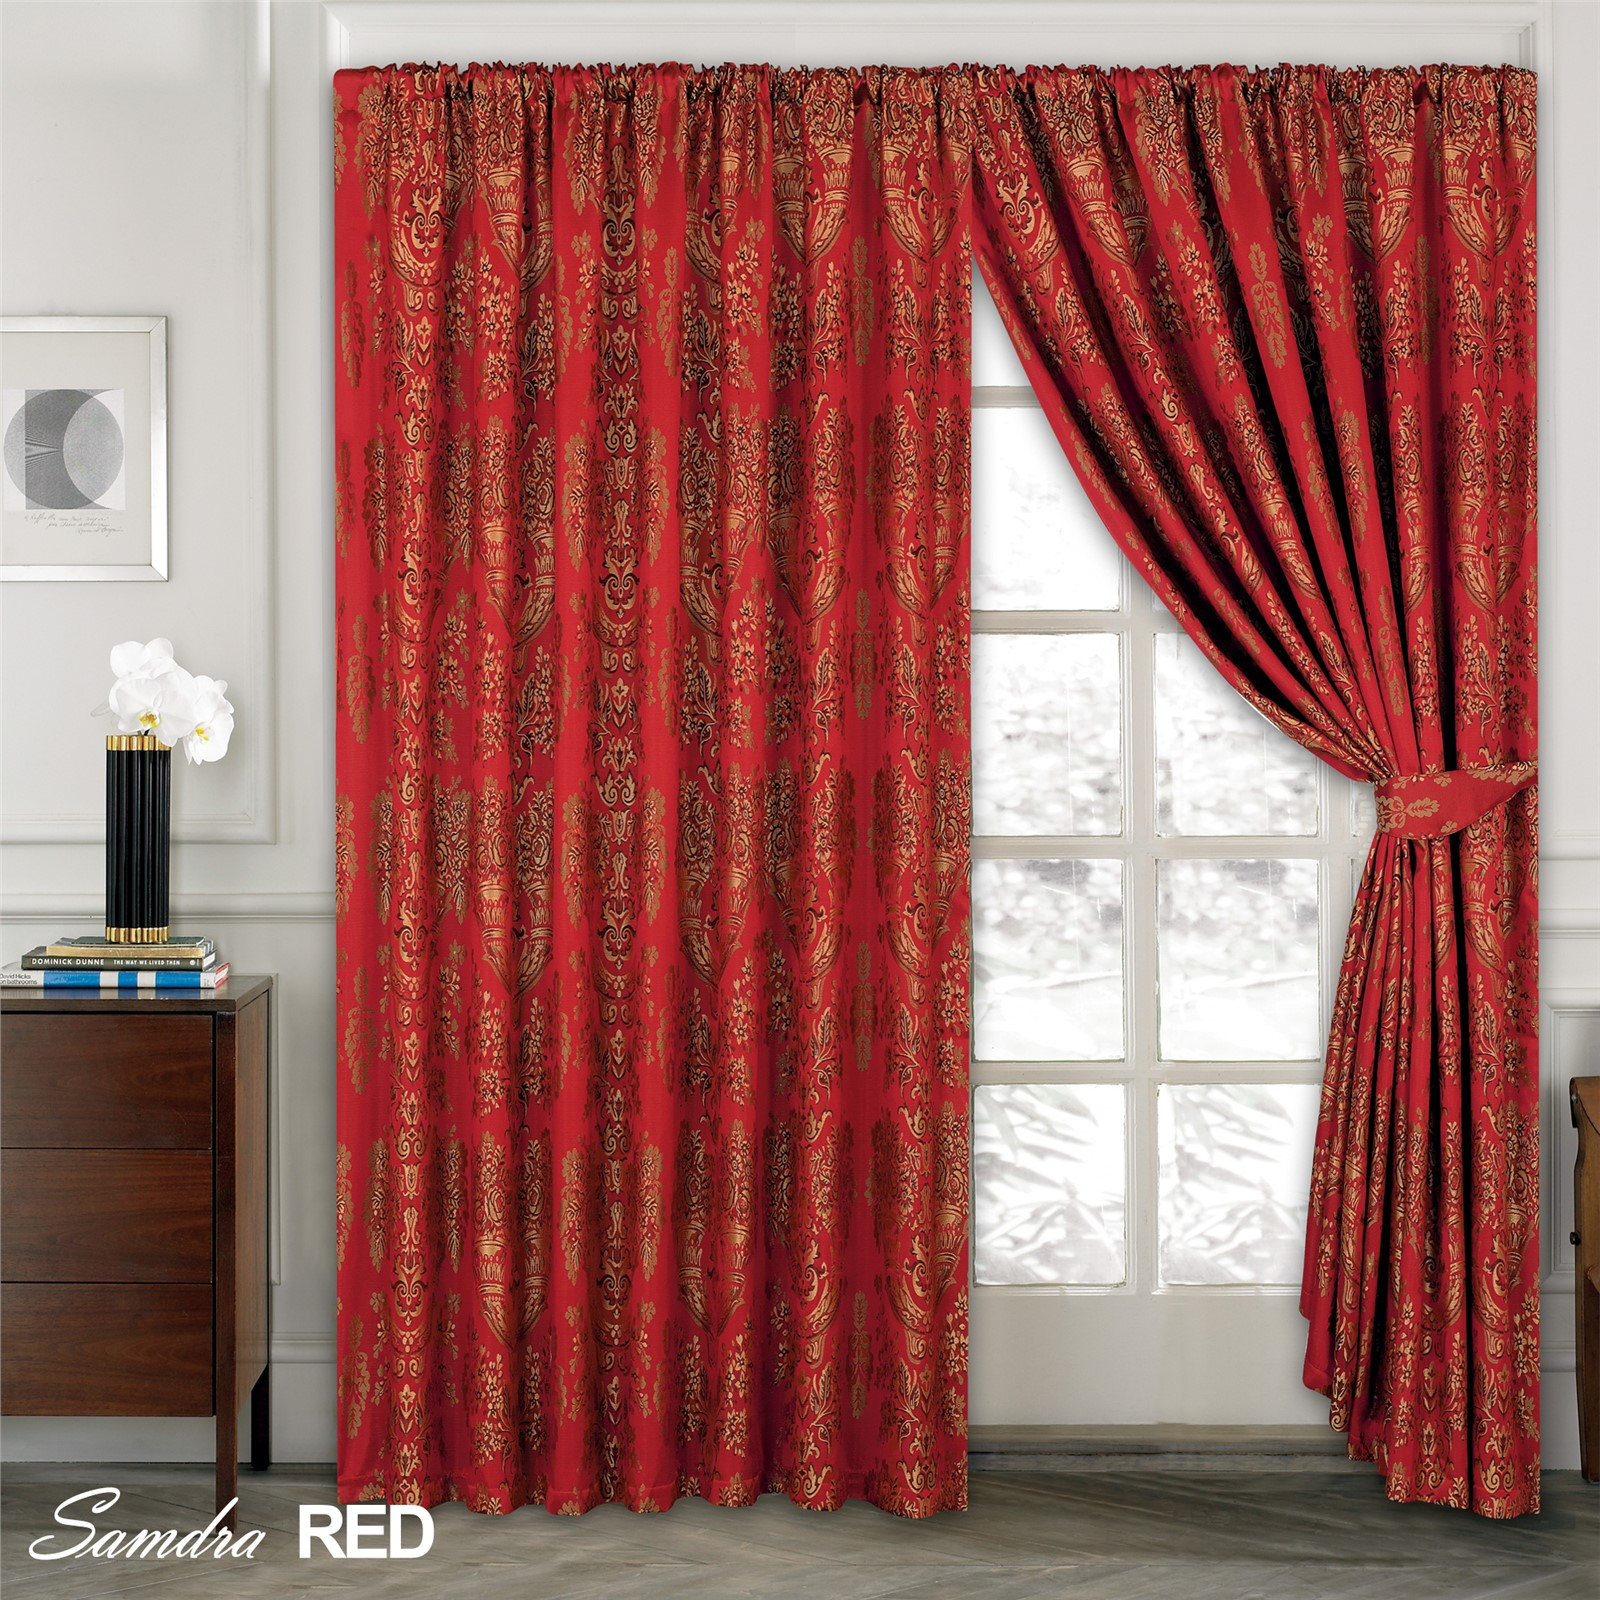 lined grey curtain ready latte made itm pleat velvet jacquard curtains pencil pair wine